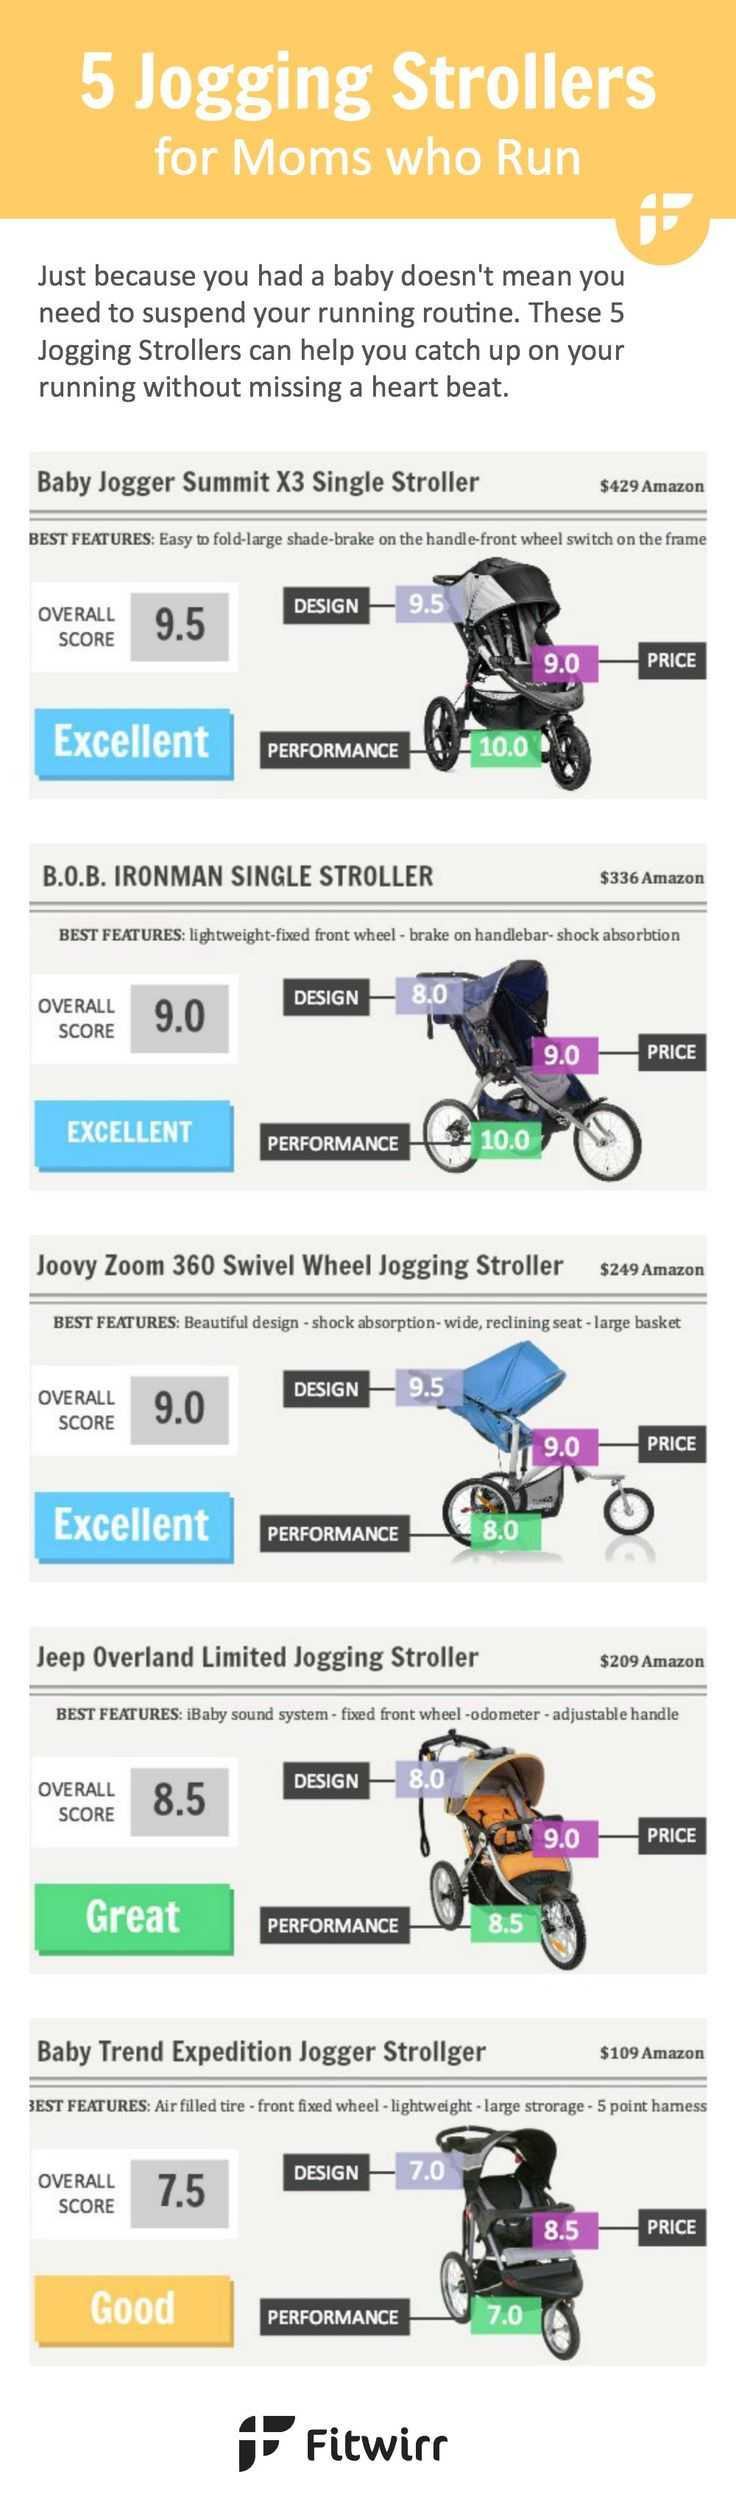 Having a child means less time for yourself. Right? It doesn't have to be with a jogging stroller. You can spend quality time outdoor with your little one, get a great workout and keep your sanity with a help of a terrain stroller. Find which jogger stroller fits your lifestyle best.